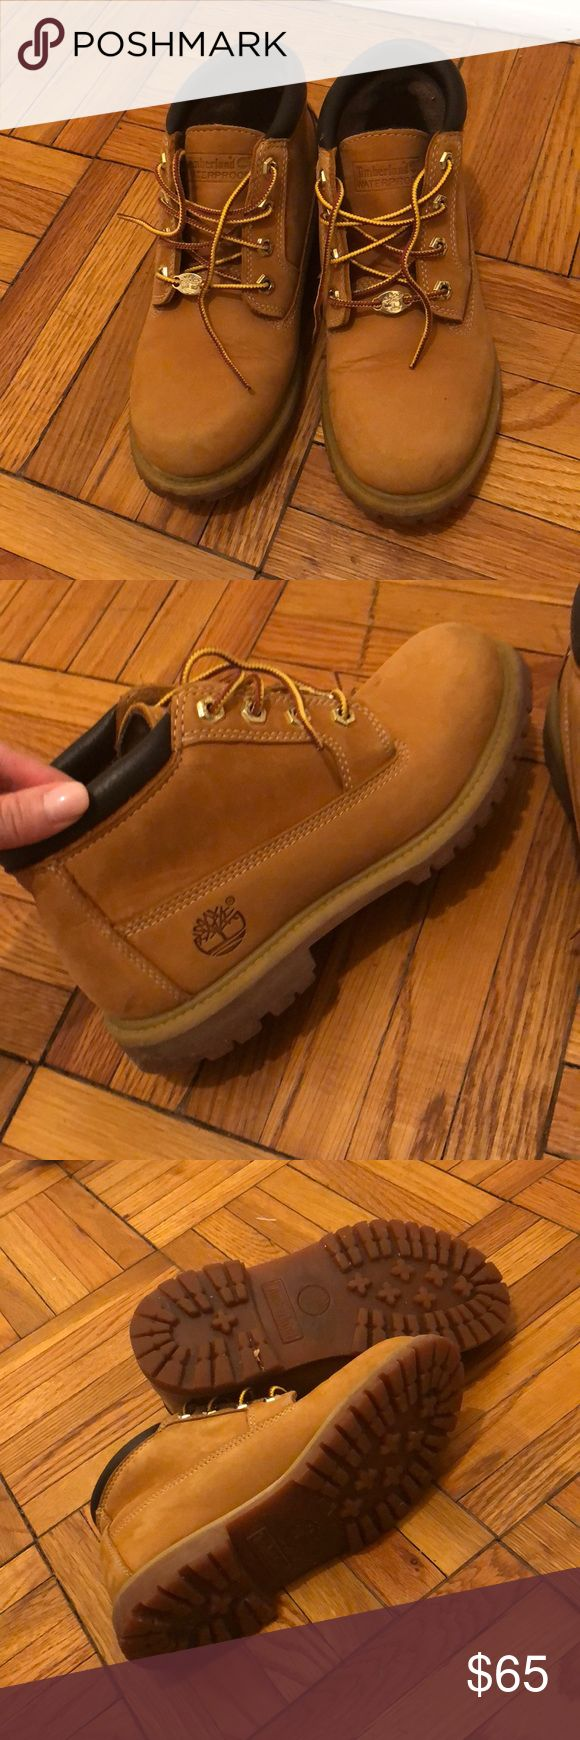 Timberland Nellie Waterproof Boots Gently used timberland ankle boots with minimal wear. Great for the snow! Timberland Shoes Winter & Rain Boots